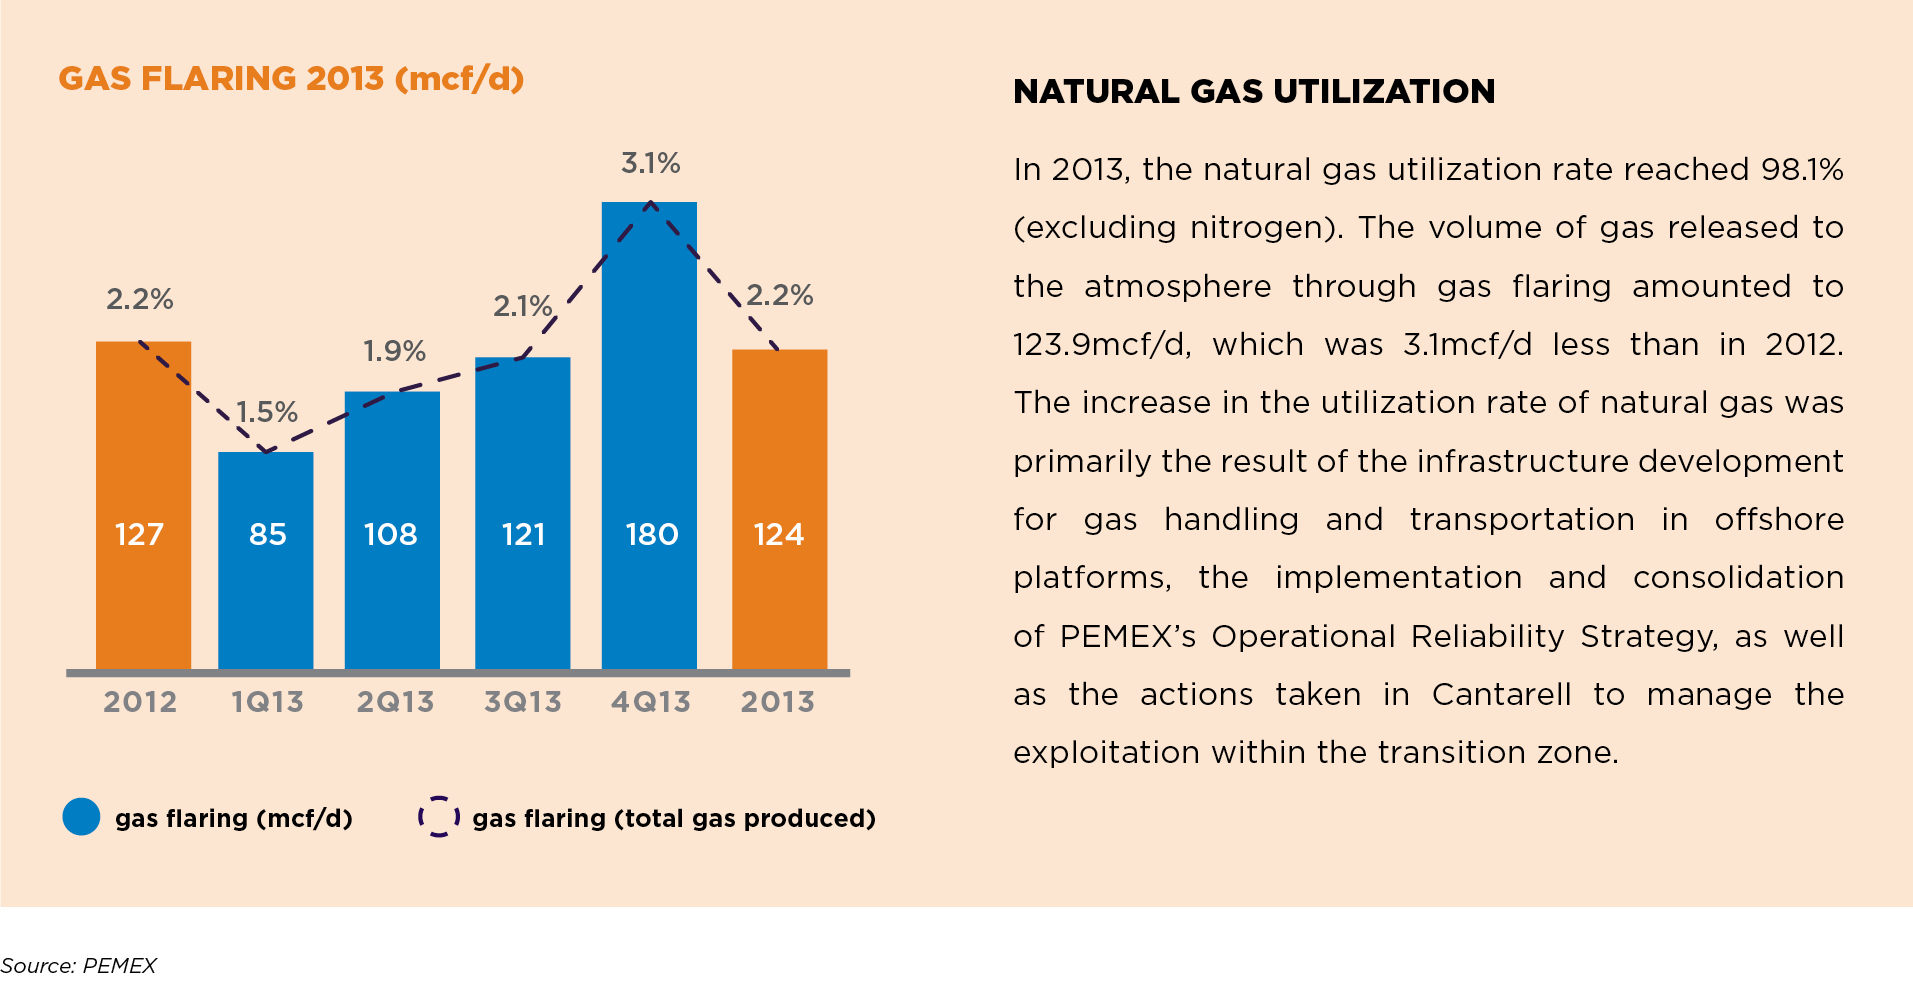 GAS FLARING 2013 (mcf/d)